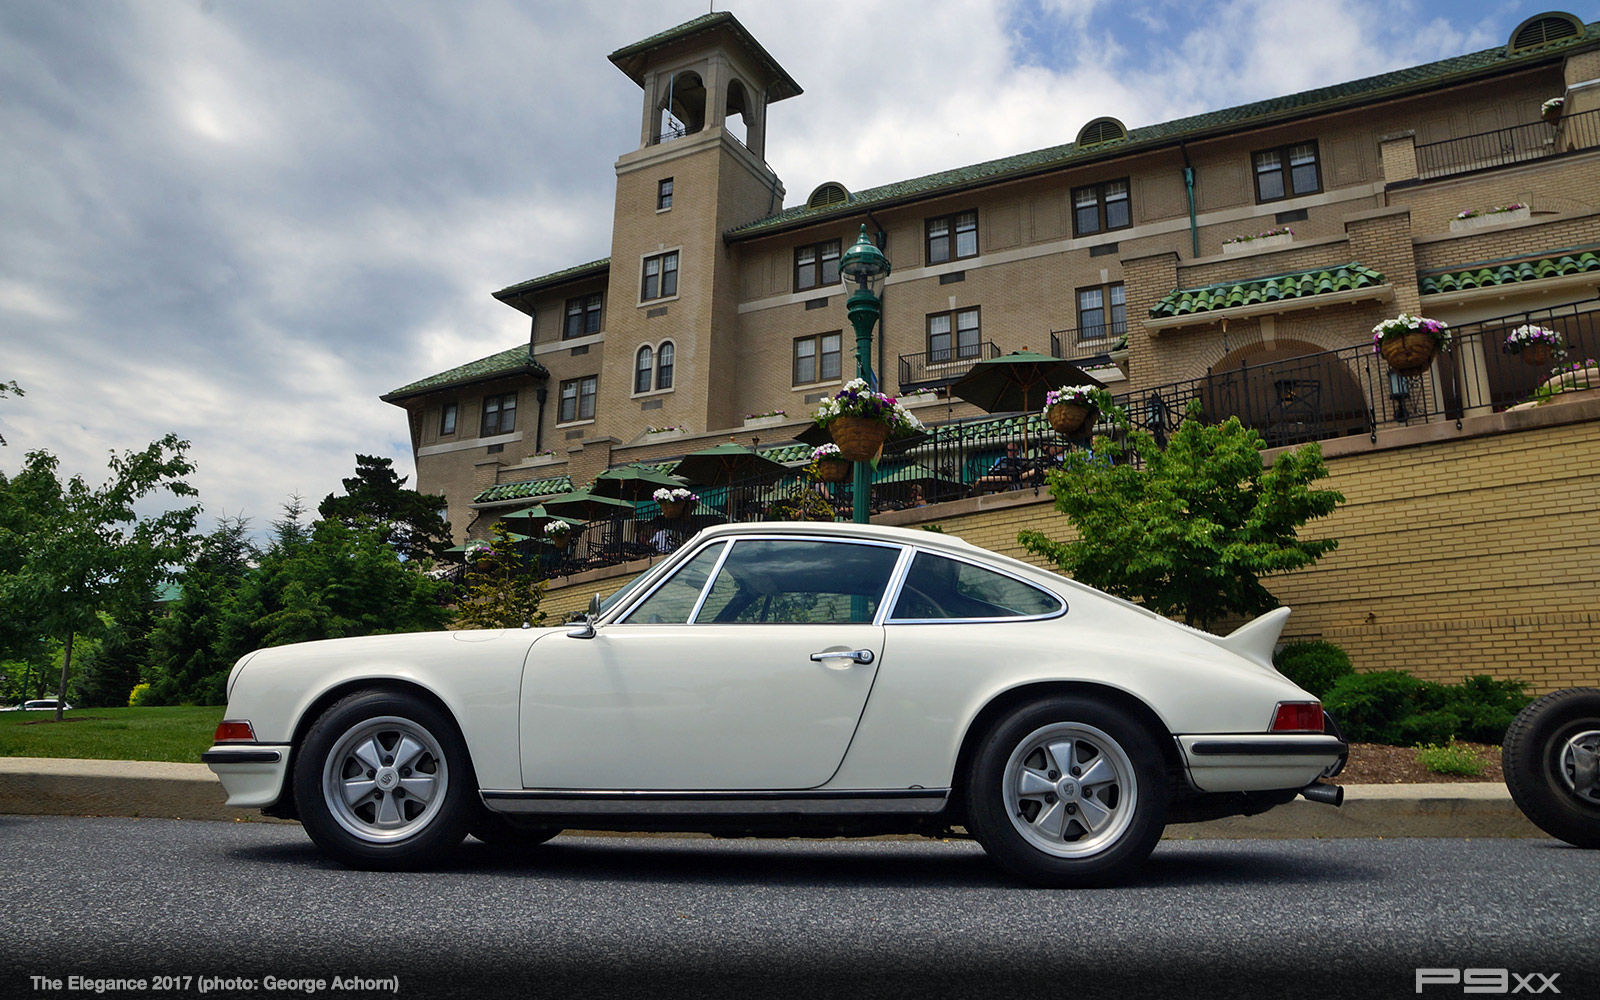 Event report porsche at the elegance 2017 p9xx the 911 was one of three porsches to be entered into the 1975 cannonball run this one was driven by bill warner the elegance 2017s grand marshal and ex sciox Choice Image